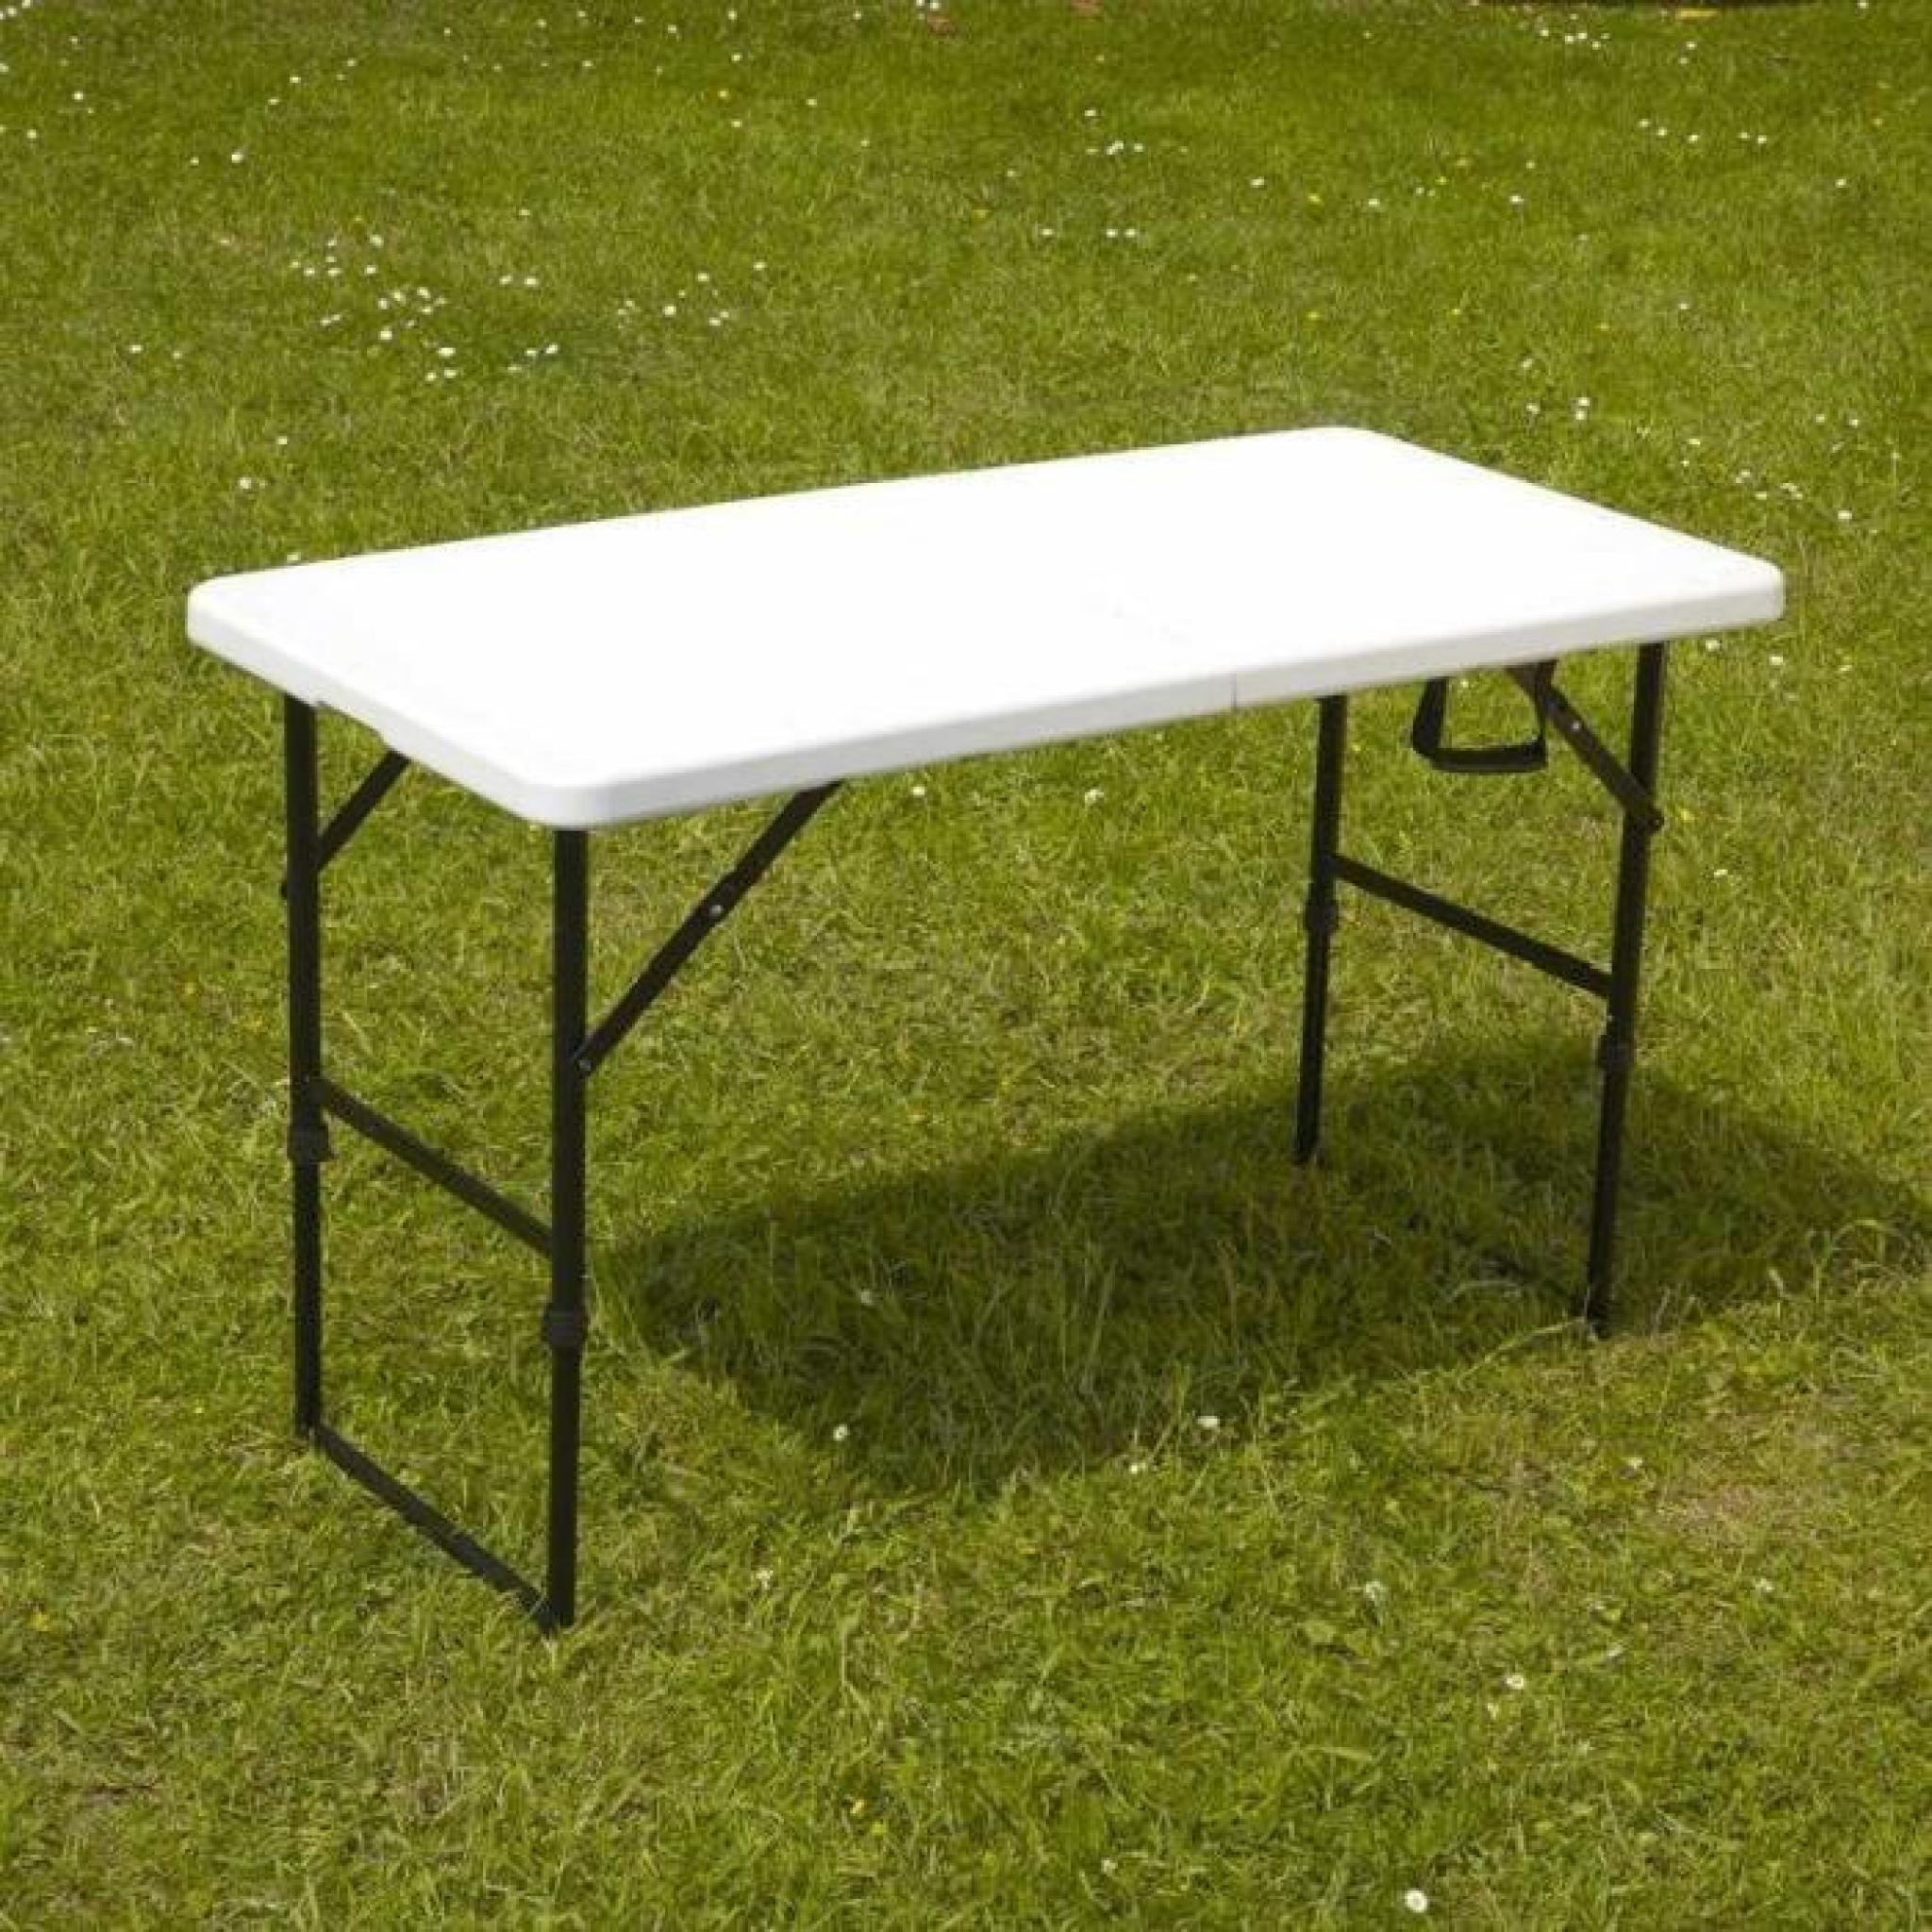 table pliante portable camping 122 cm achat vente table. Black Bedroom Furniture Sets. Home Design Ideas